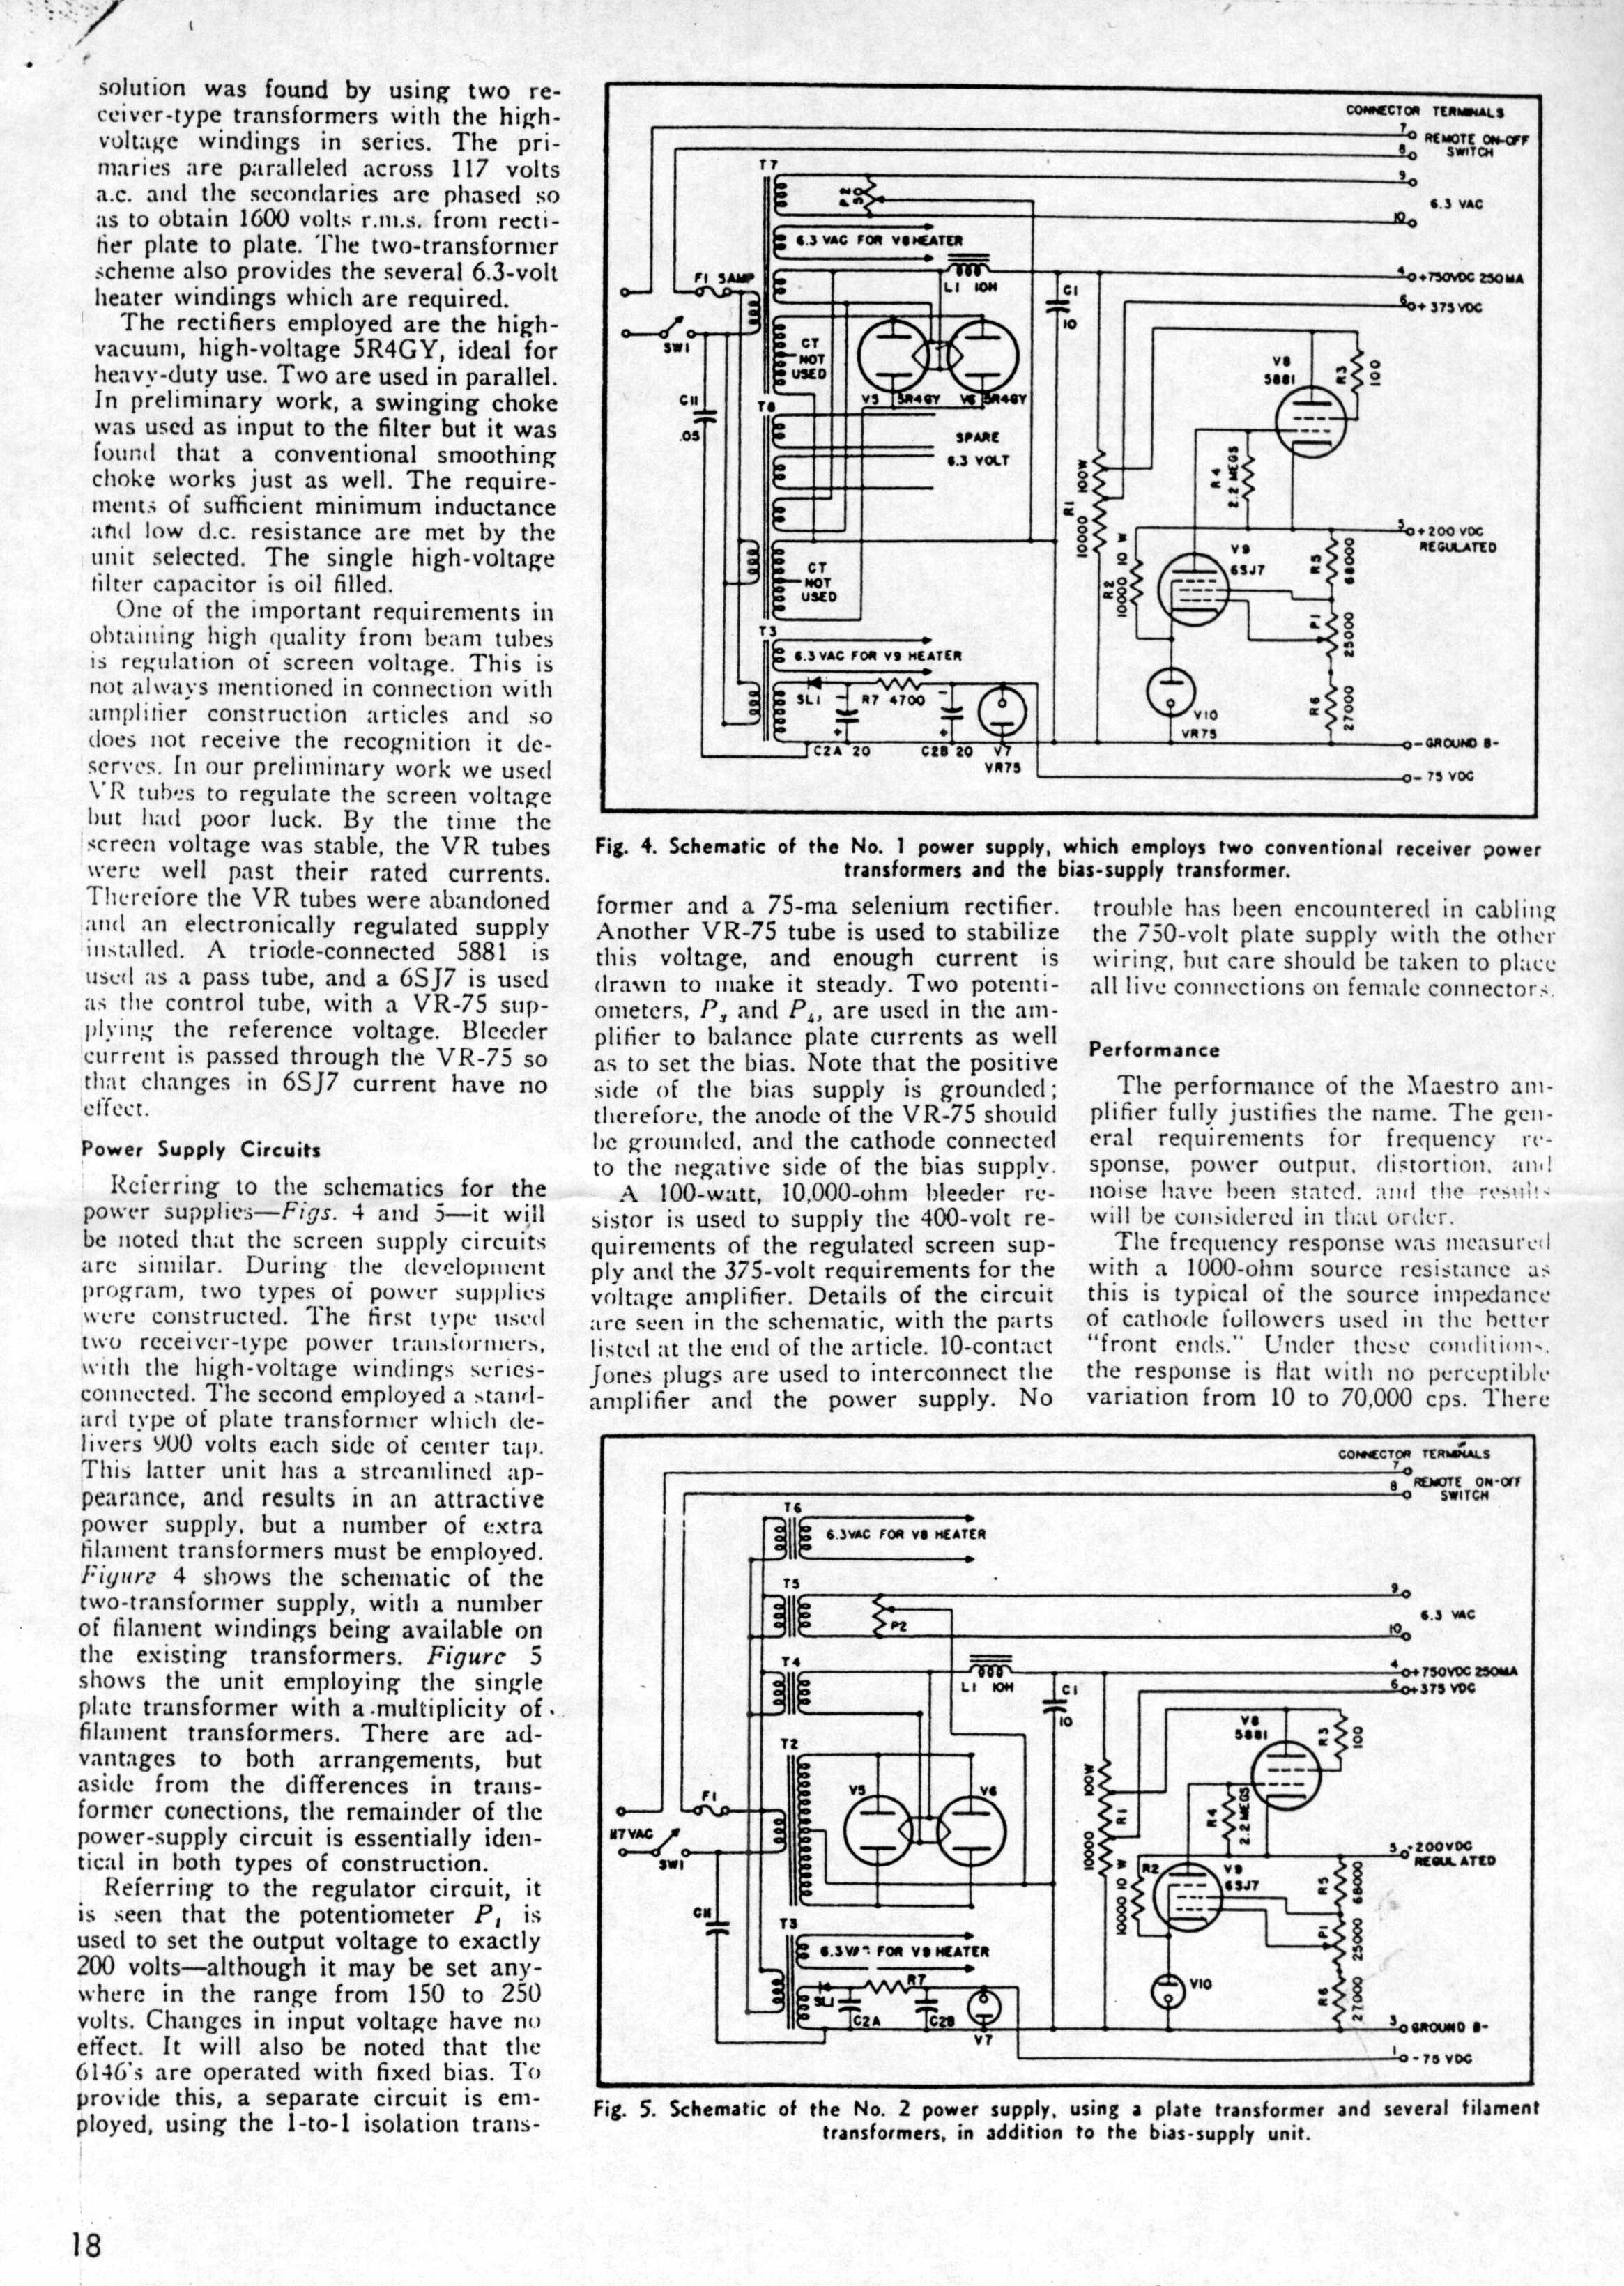 A515 The Original Williamson Hifi Amplifier Schematic As Published In Page 3